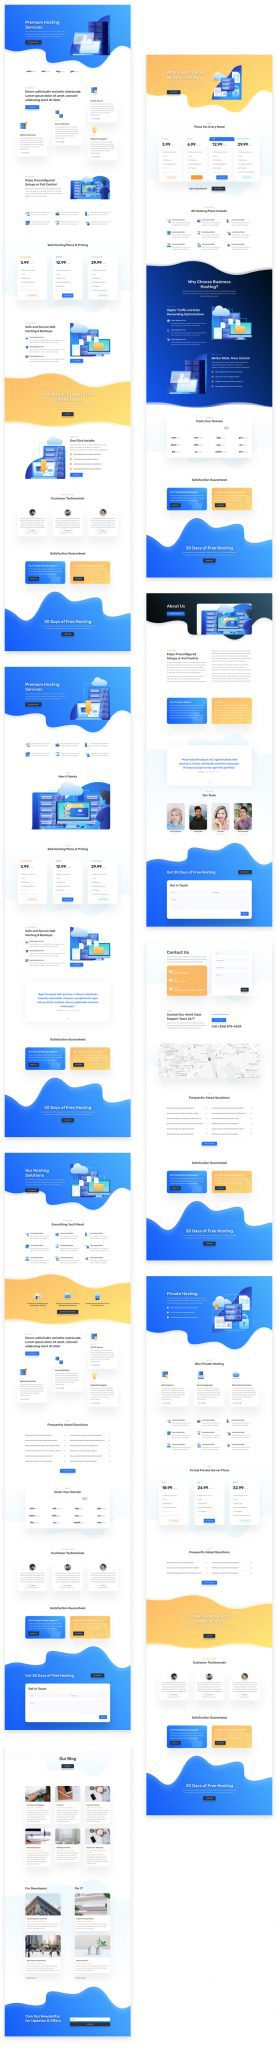 Hosting Company Layout Pack